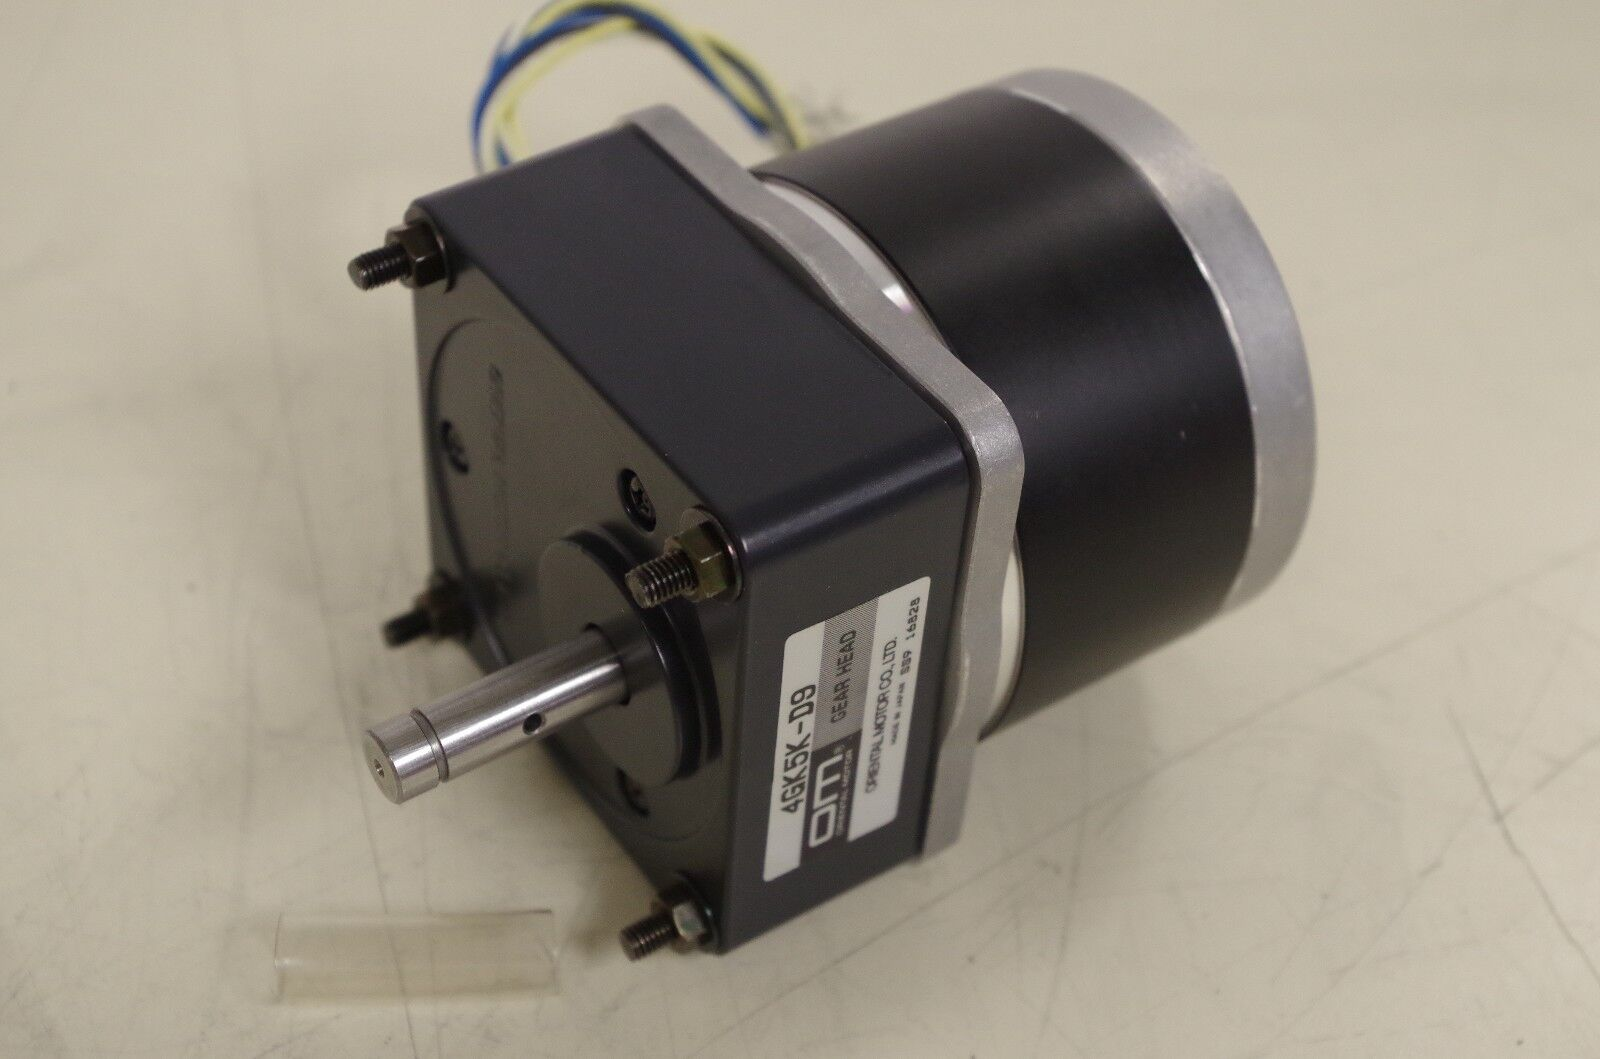 AMP STEP STEPPING MOTOR MODEL# 5023-094  6VDC 1.2A.